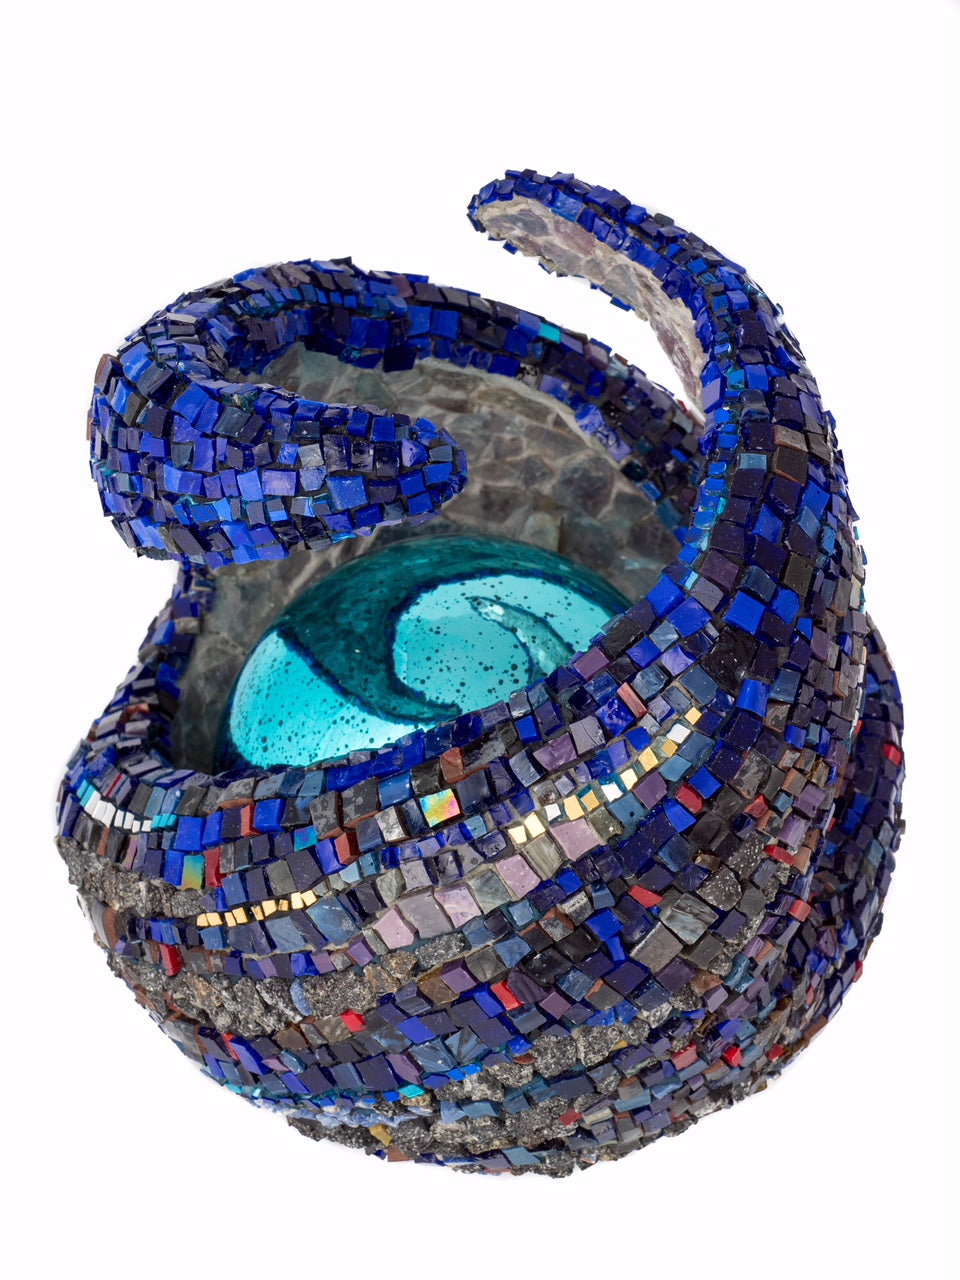 """Embrace"" 8"" by Dianne Sonnenberg - sculptural mosaic.  Smalti, granite, semiprecious stone, 24K gold, and an illuminated glass sphere create this very personal piece exploring the preciousness and fragility of an embrace."